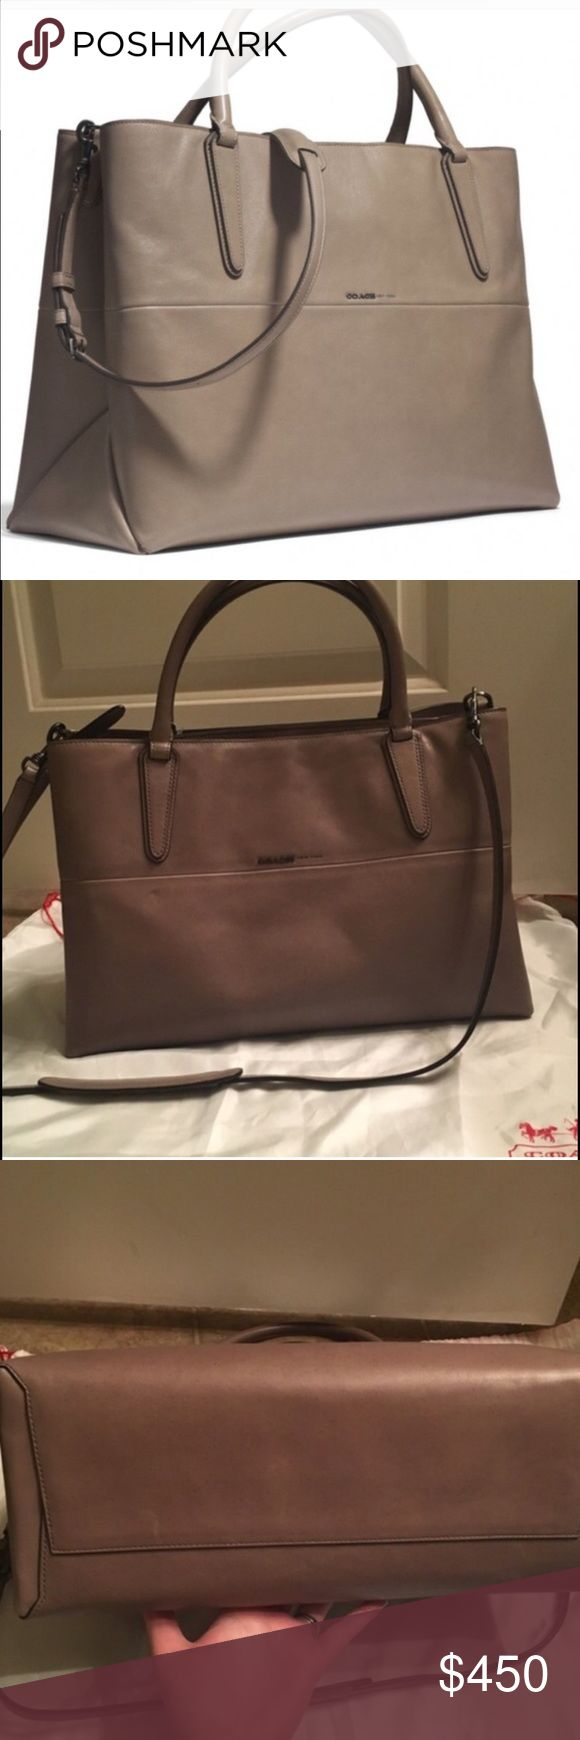 Coach Borough bag NWT. Gorgeous bag. Great for shoulder bag and comes with long strap, too Coach Bags